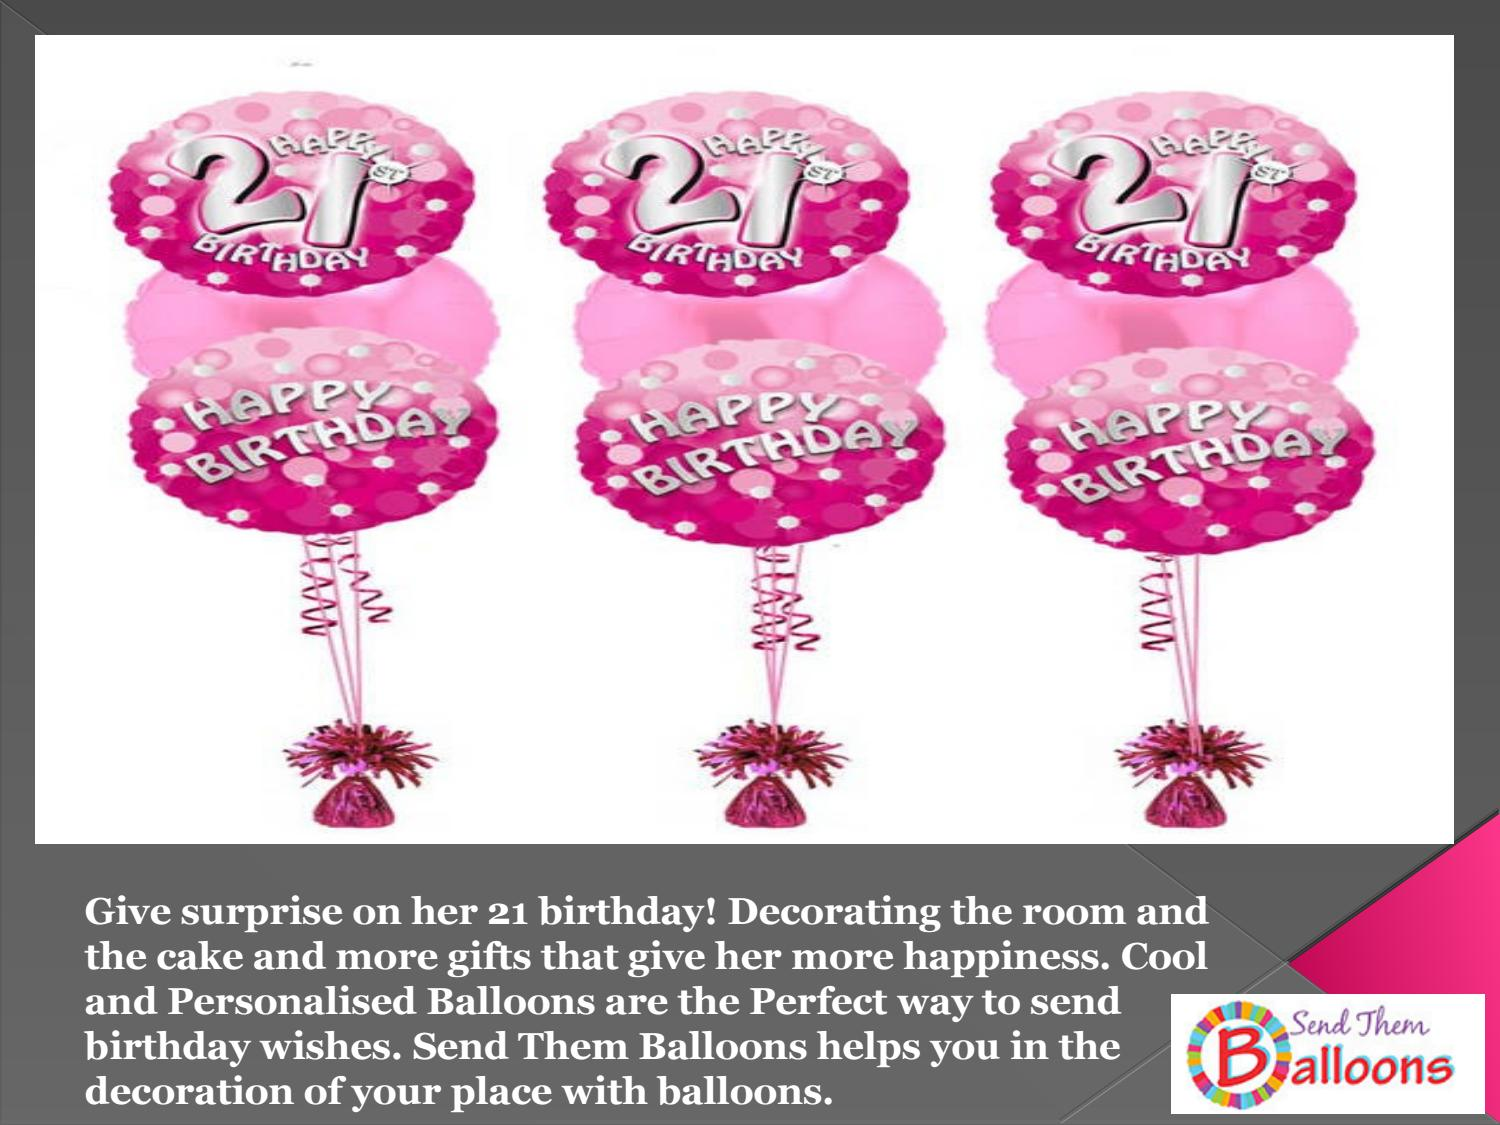 Celebrate Your 21 Birthday With Send Them Balloons By